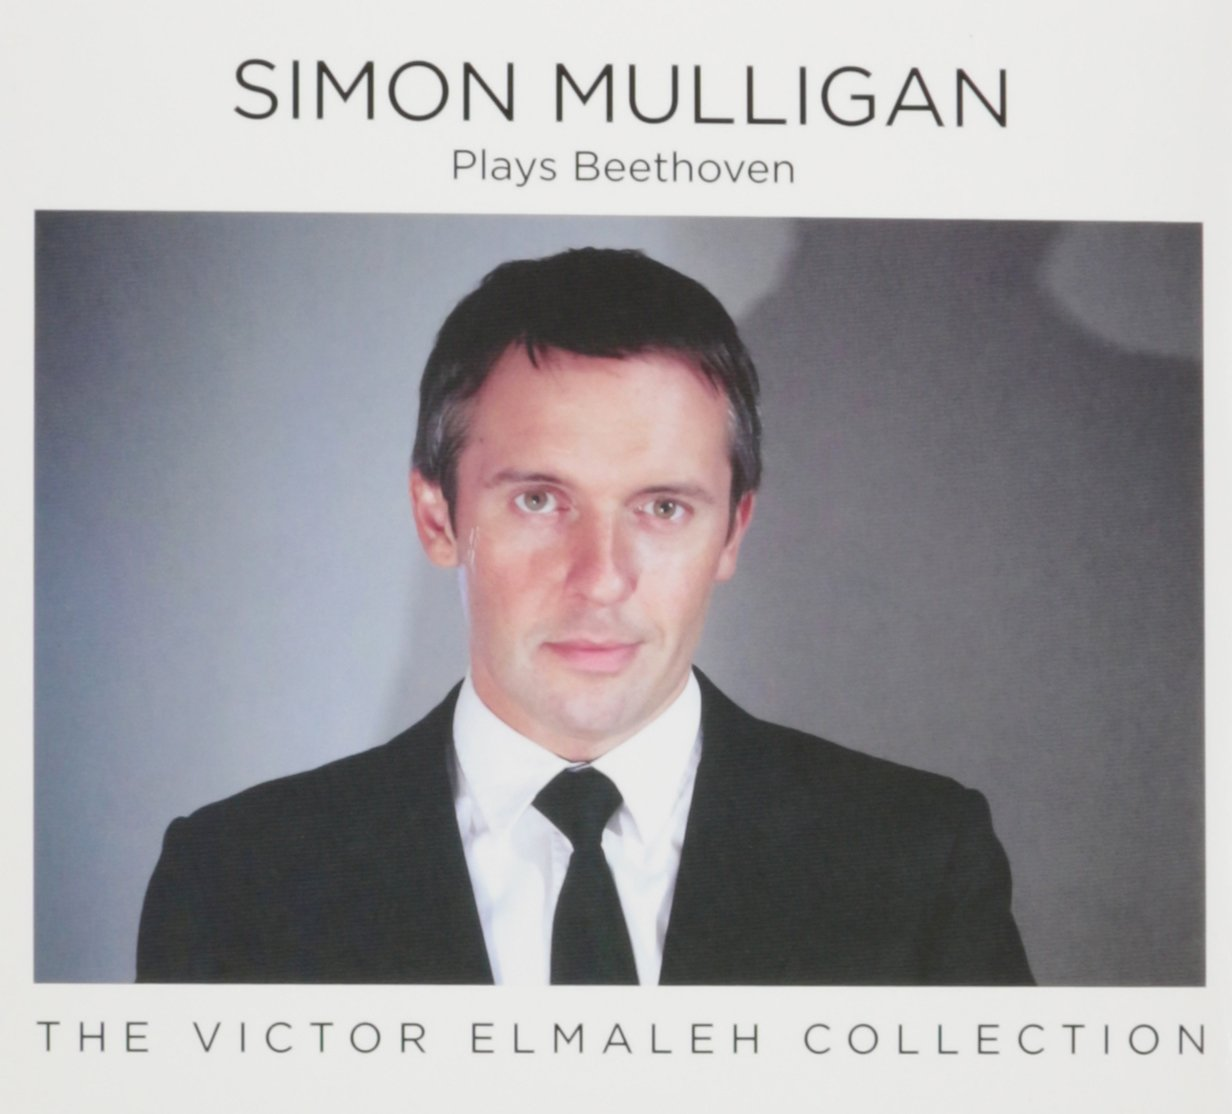 Simon Mulligan Plays Beethoven by Victor Elmaleh Colle